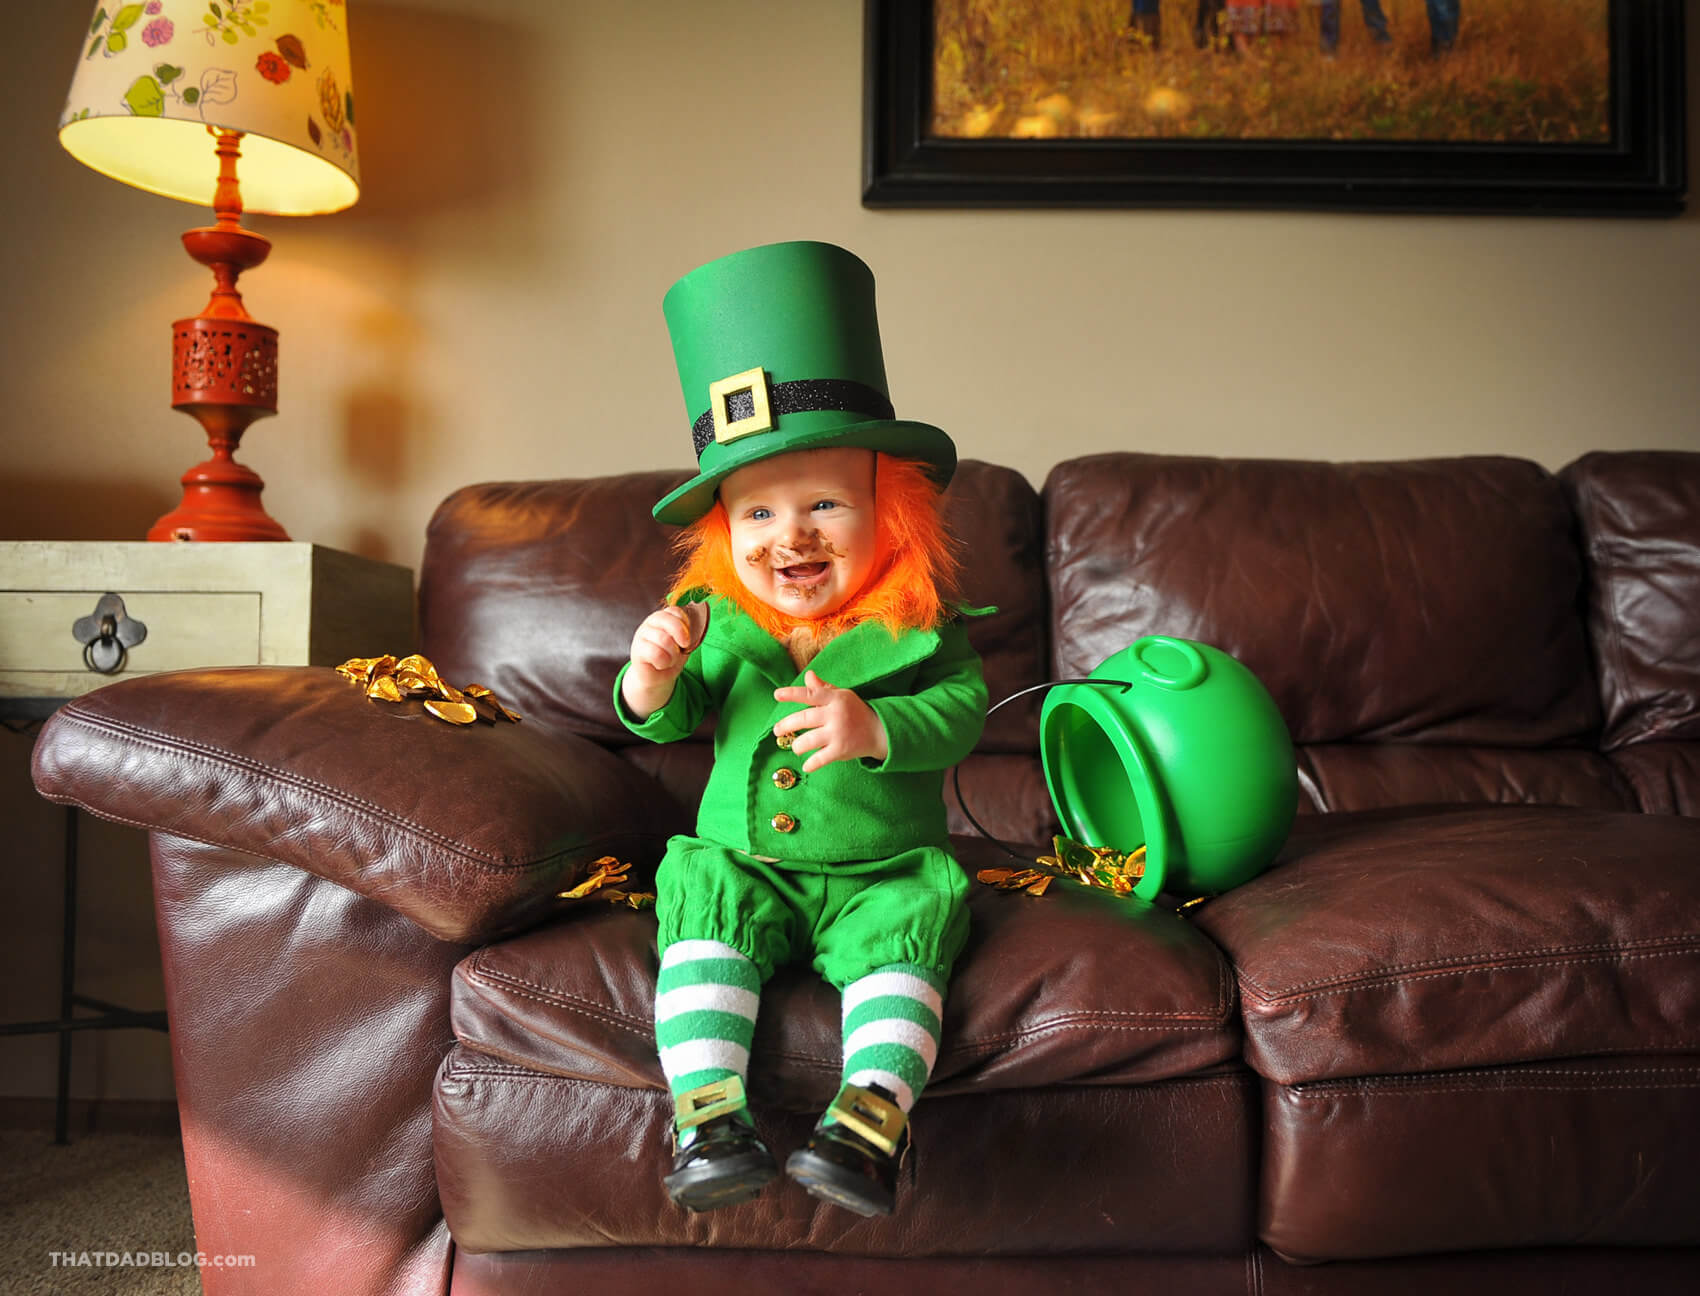 Real Life Leprechaun - That Dad Blog Cute Baby Pointing Finger